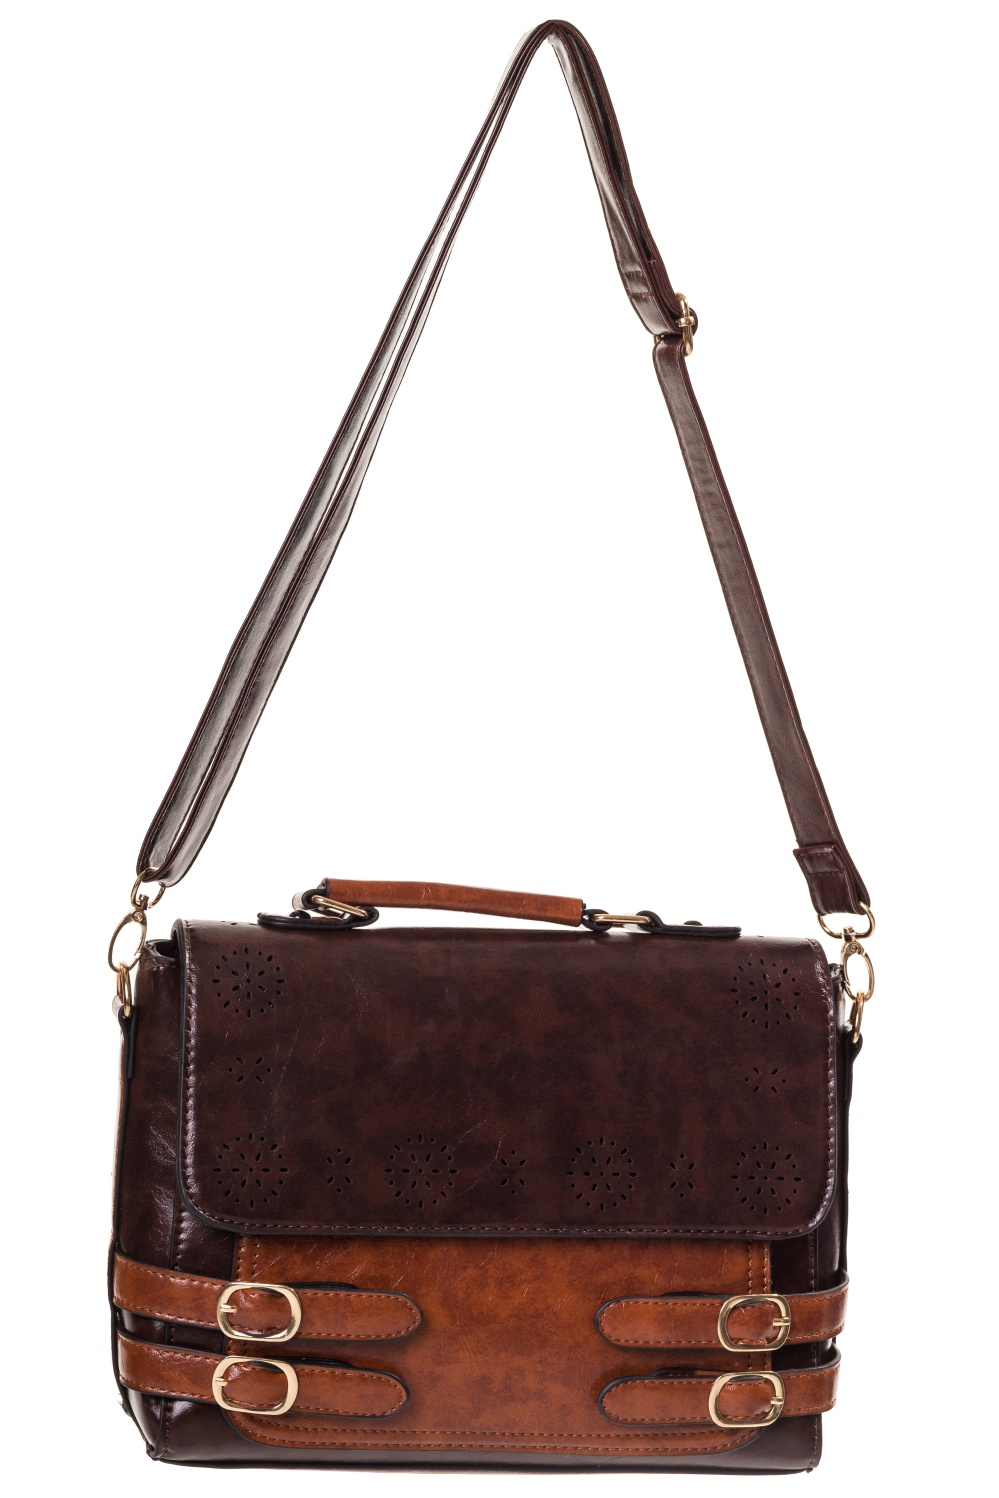 455c4ead76ea Steampunk Banned dark and light brown faux leather handbag satchel Banned